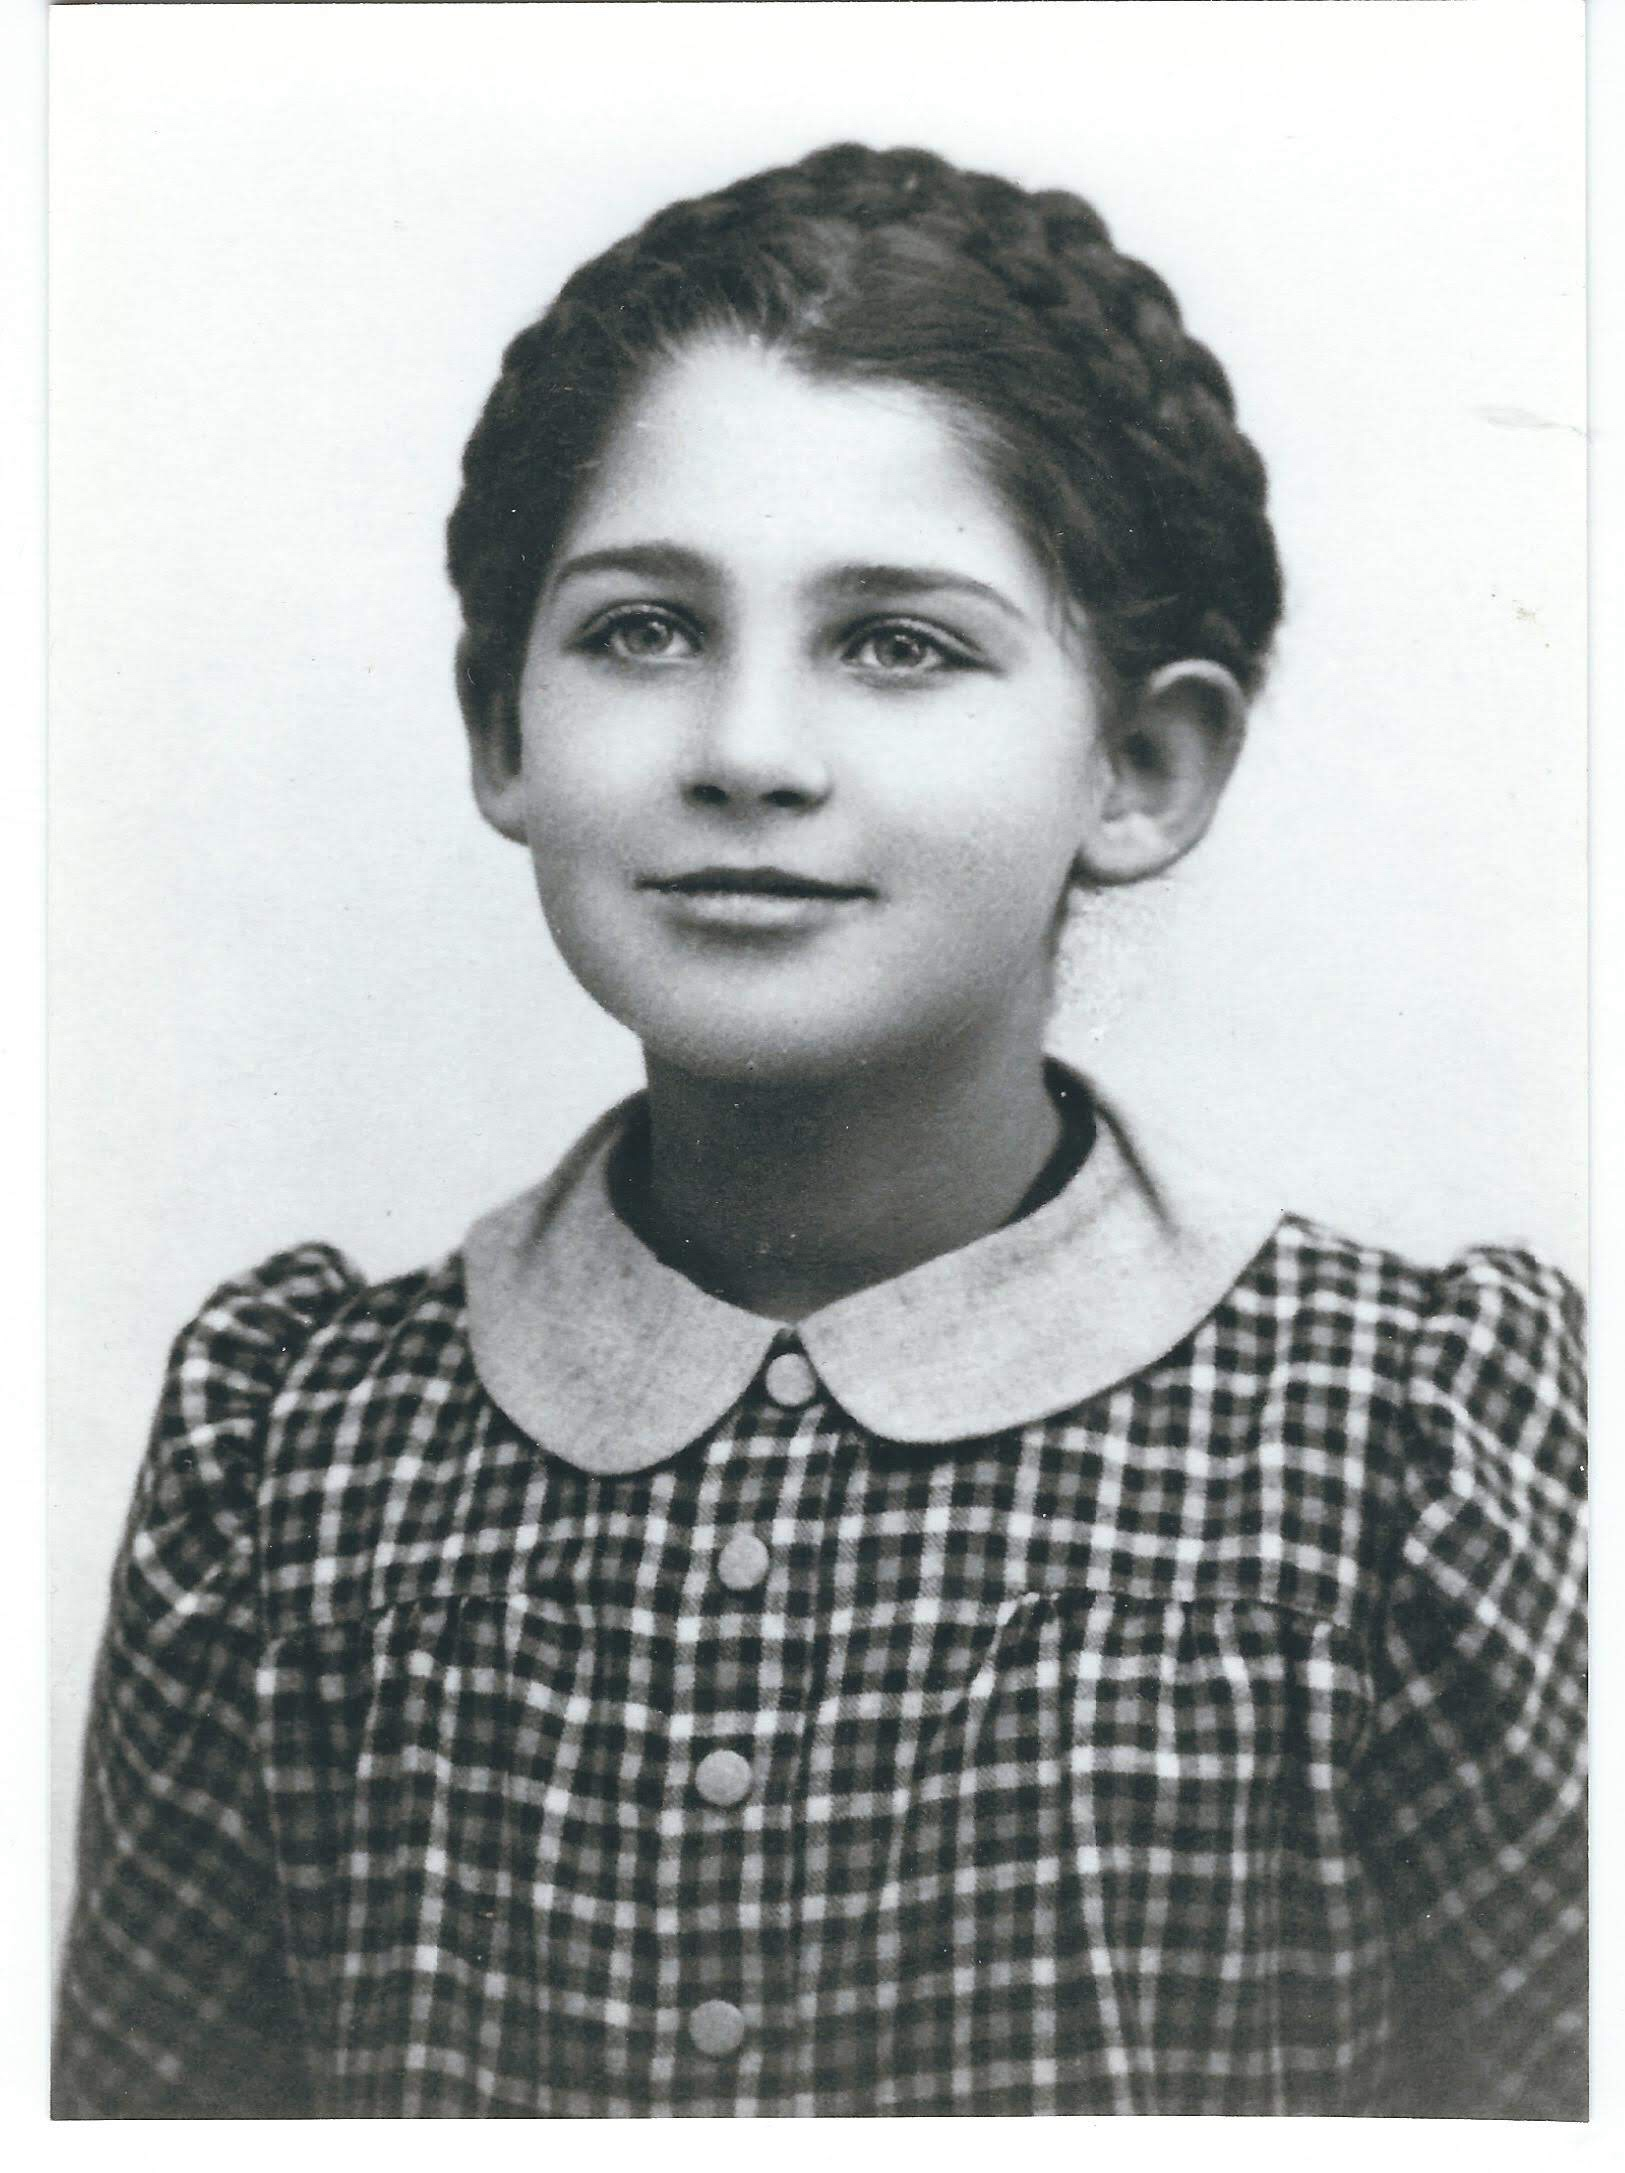 My Mother, Margalit Beizer, before the War.